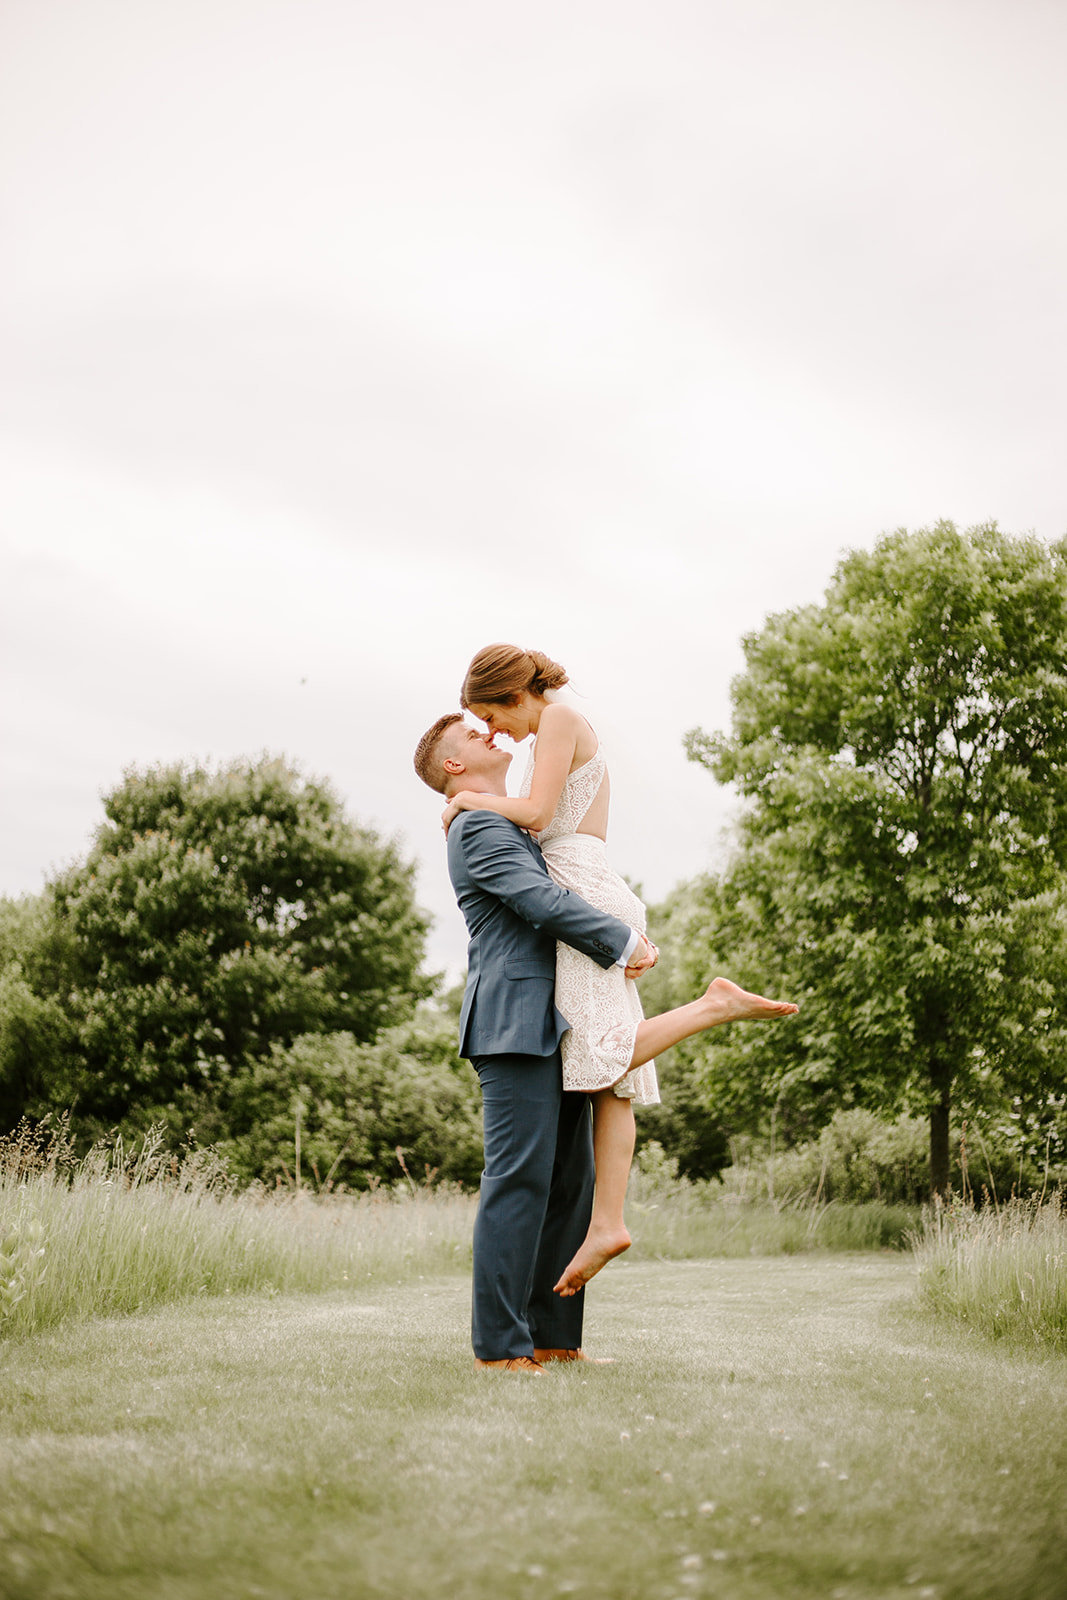 Groom lifting up his bride in a field during their Minneapolis Elopement